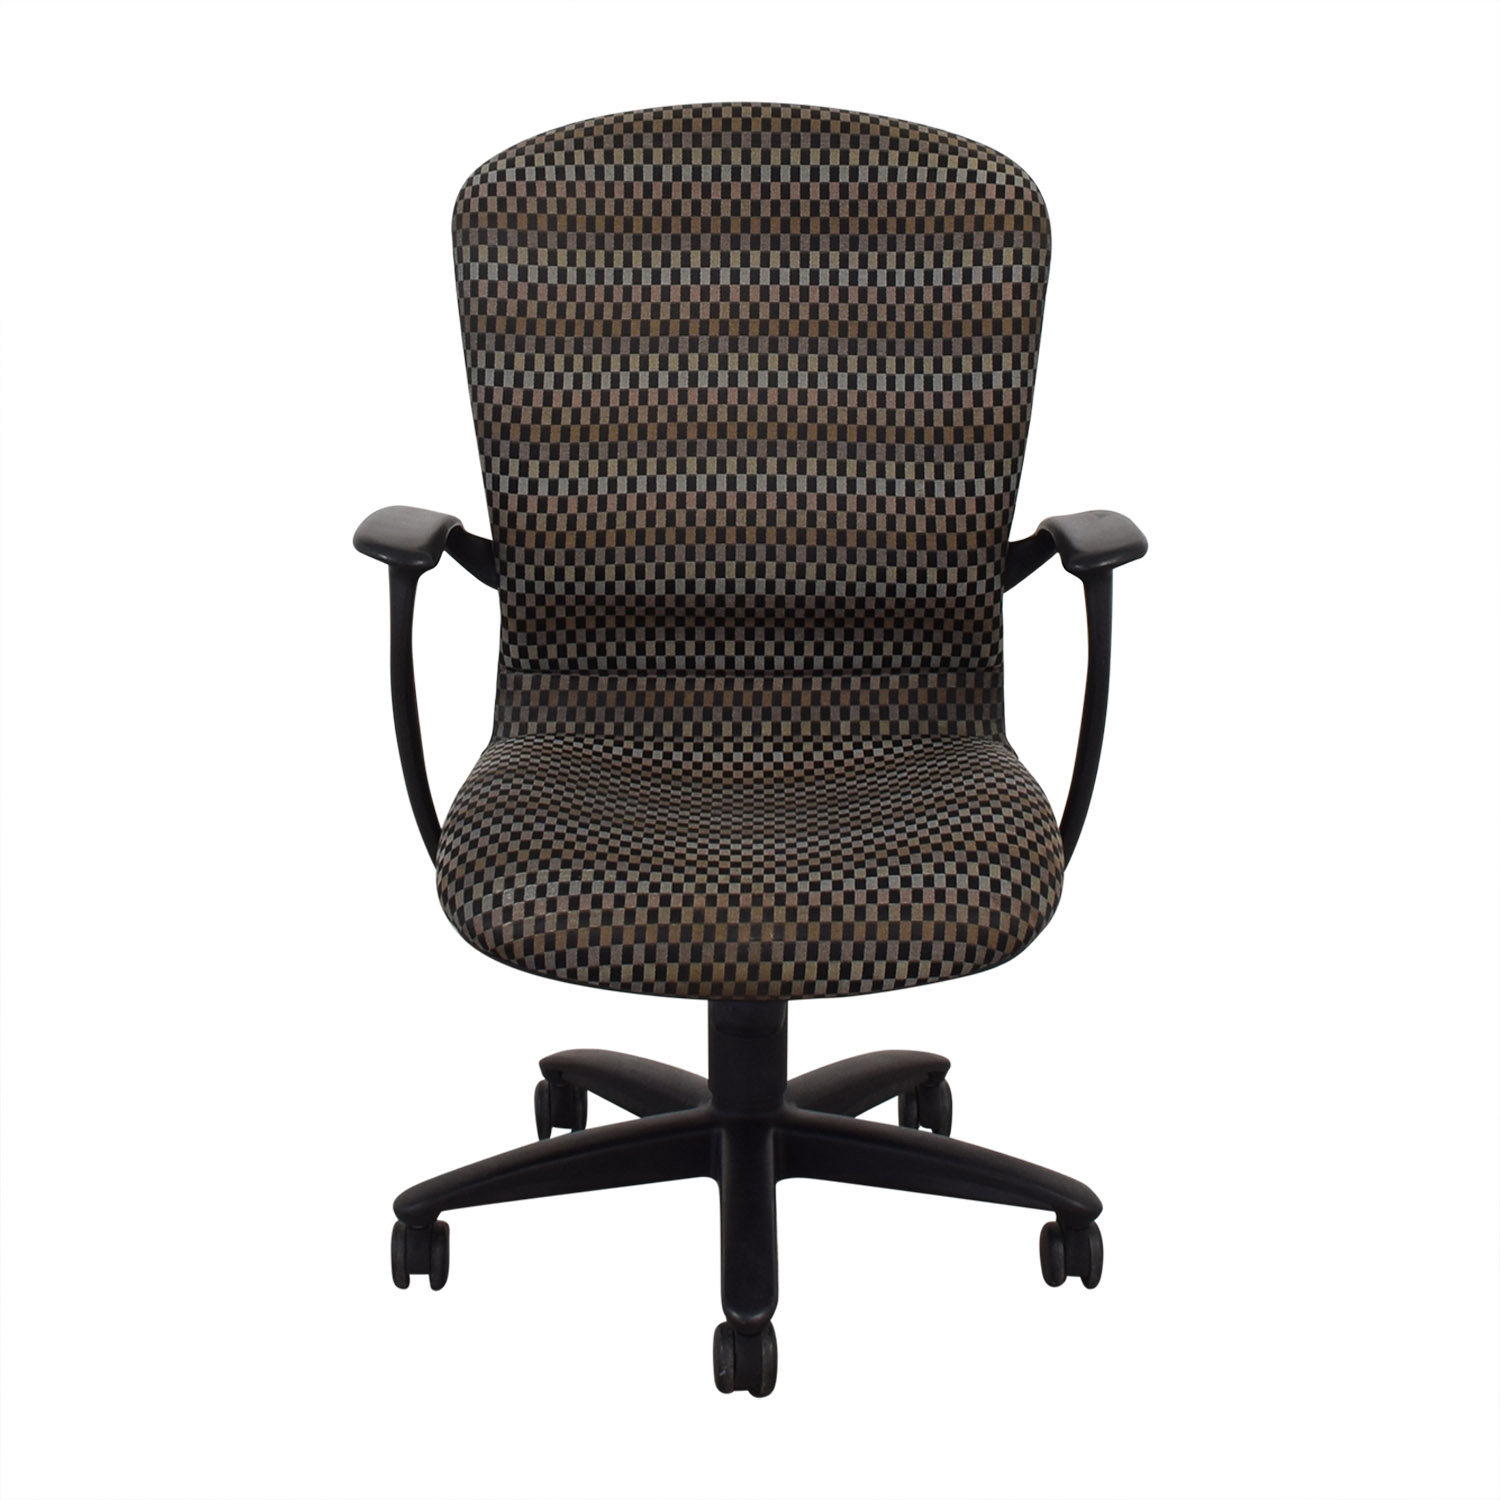 Haworth Improv Office Desk Chair Haworth